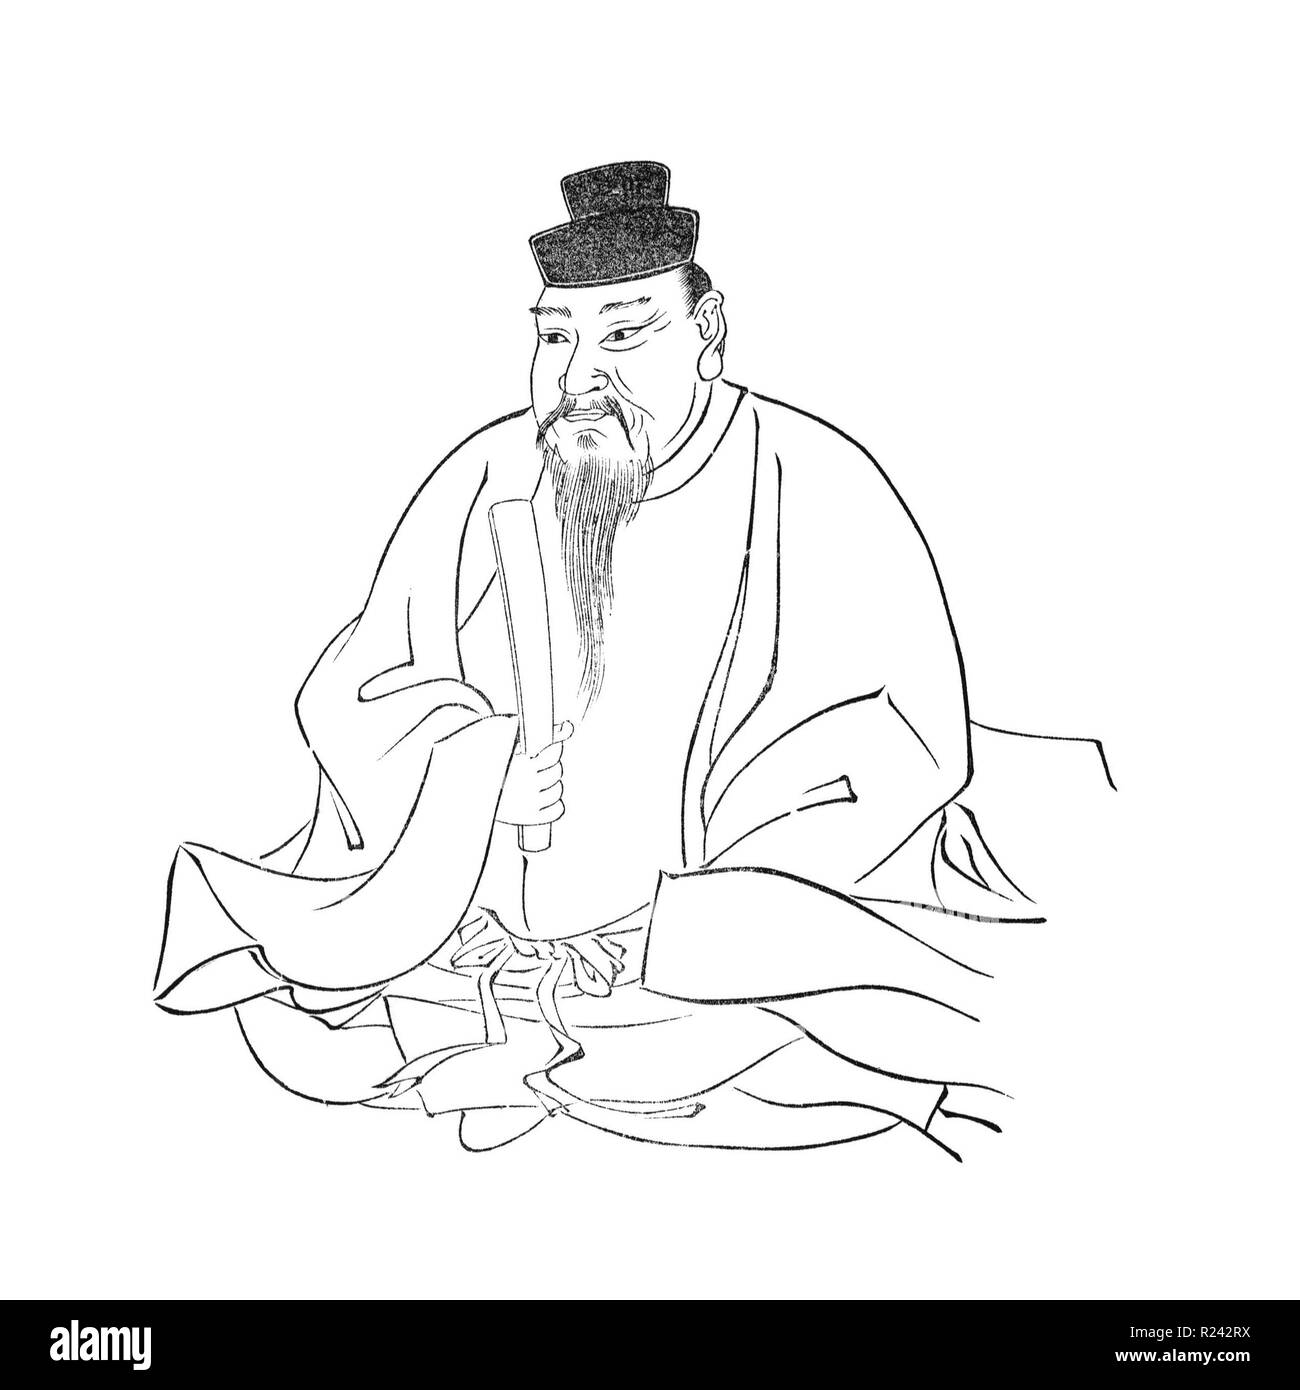 Emperor Ojin (the 15th Emperor of Japan); reigned from 270 to 310 - Stock Image